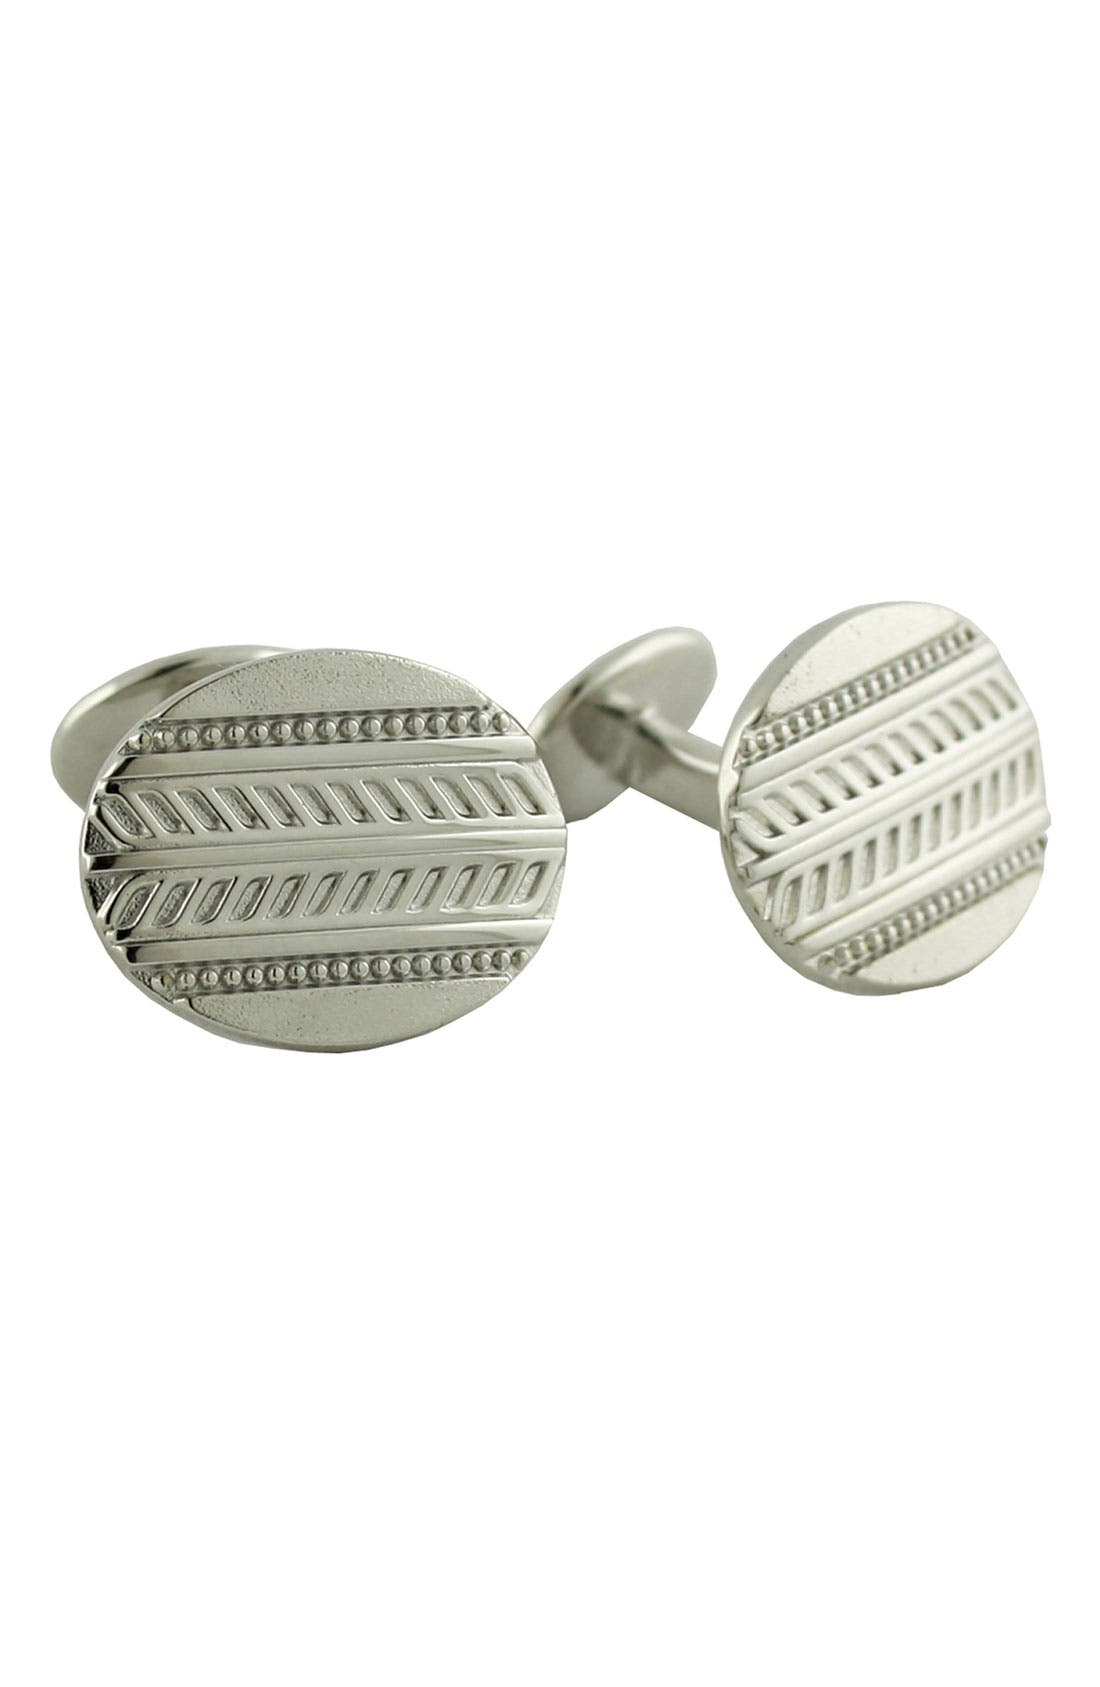 Alternate Image 1 Selected - David Donahue Oval Sterling Silver Cuff Links